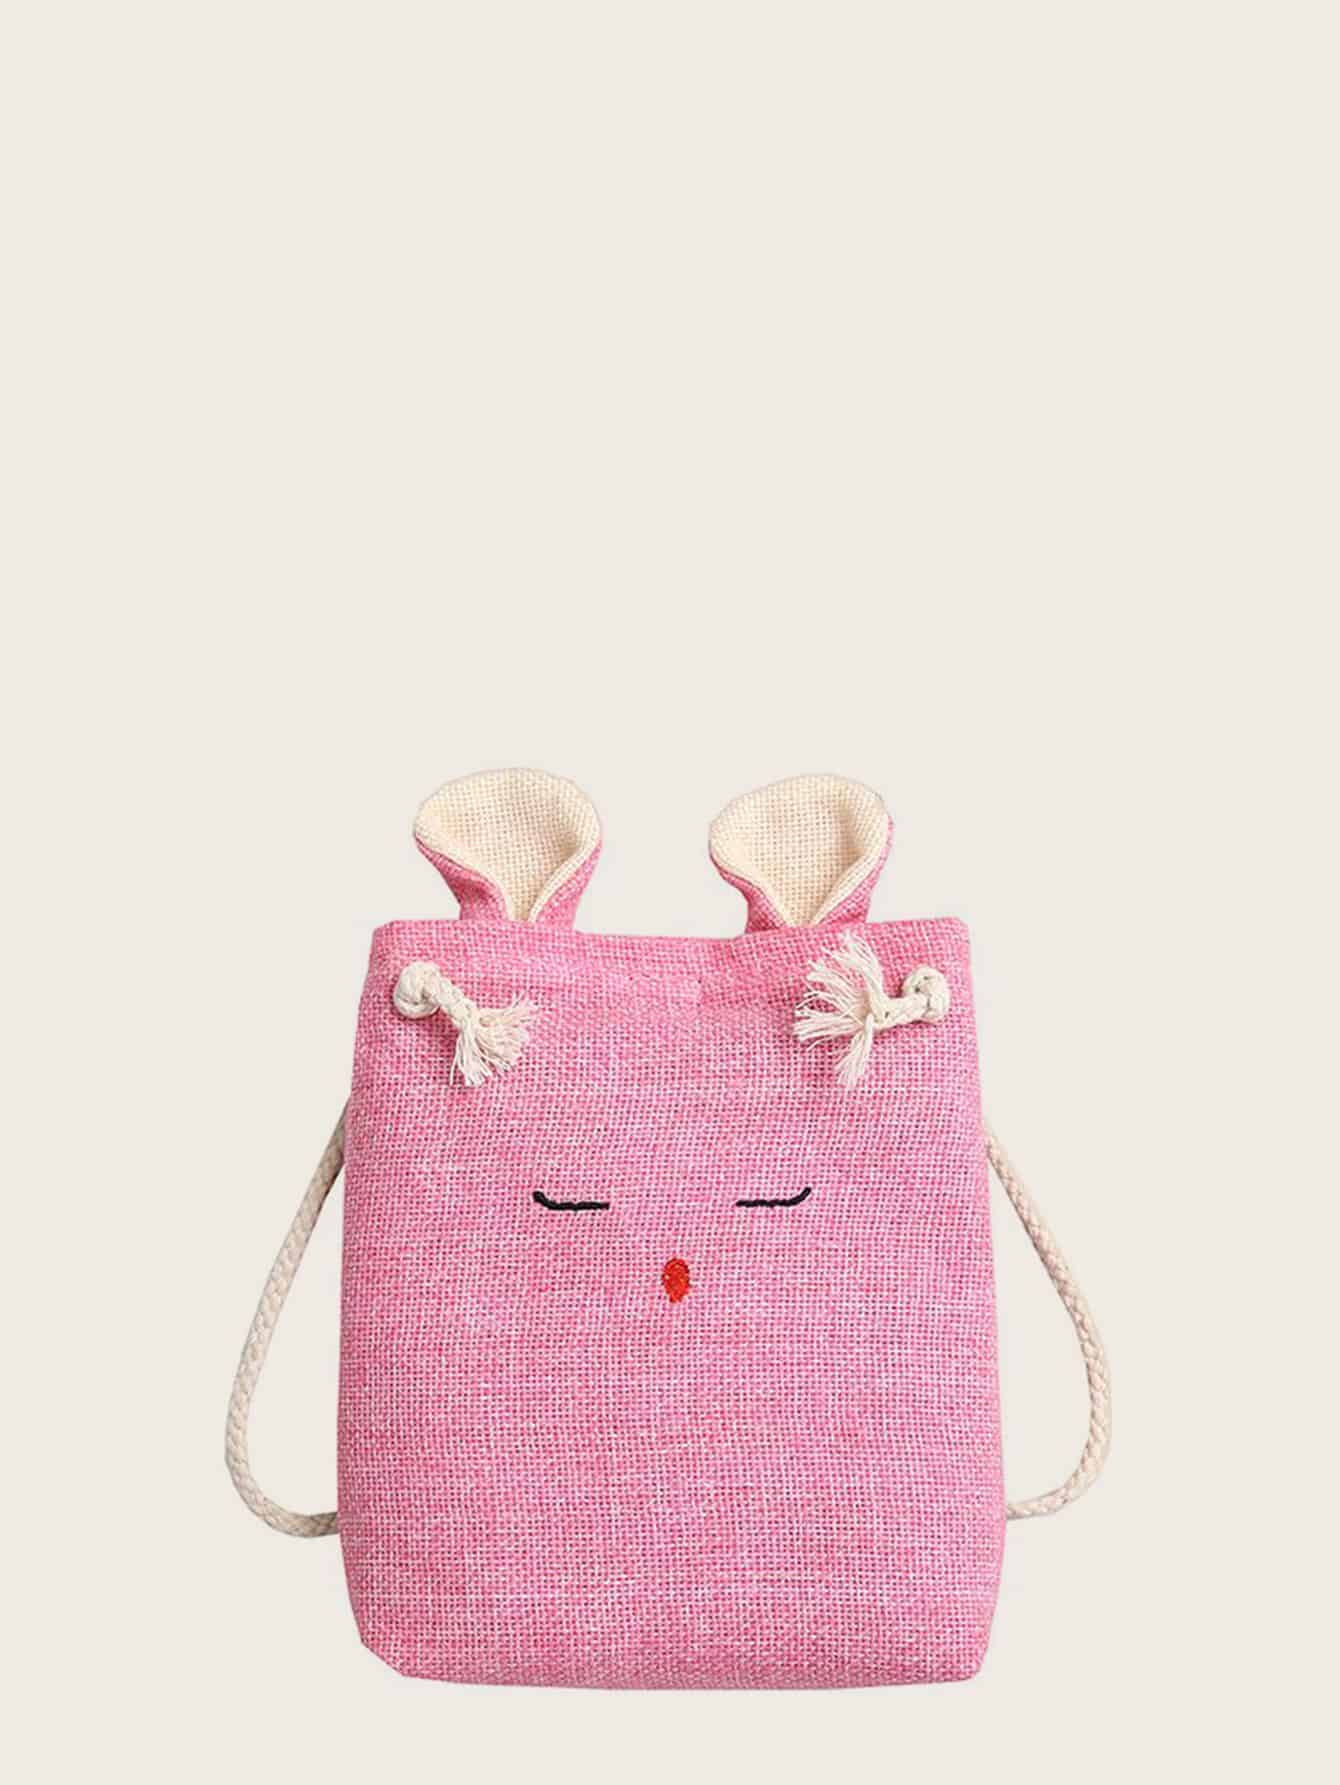 aa54d0ac0a Animal Design Canvas Crossbody Bag, null - shein.com - imall.com